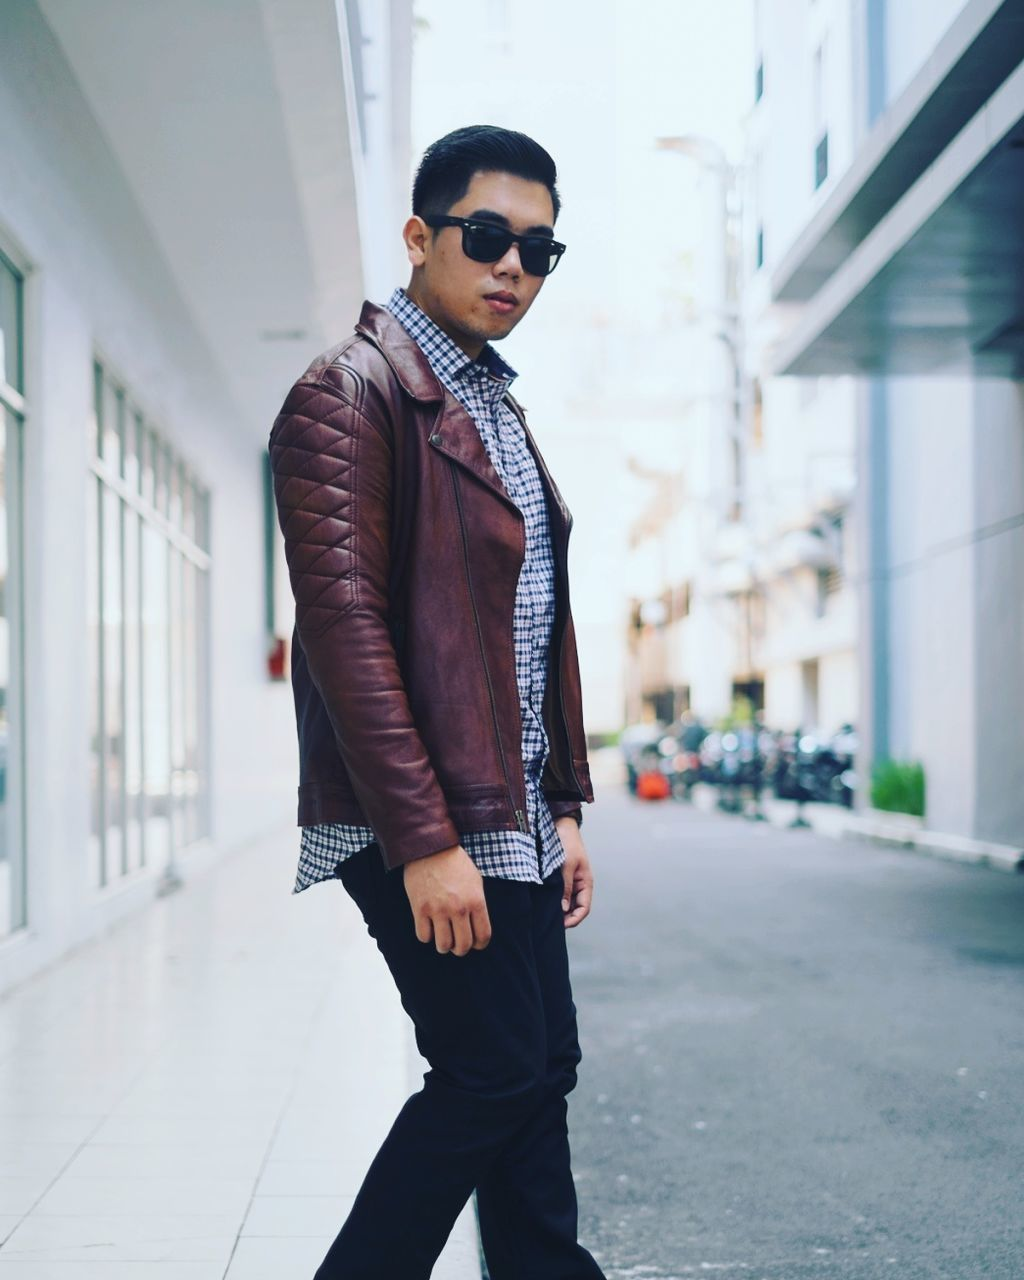 sunglasses, one person, young adult, young men, standing, fashion, focus on foreground, real people, hands in pockets, front view, jacket, building exterior, outdoors, looking at camera, well-dressed, portrait, attitude, lifestyles, men, handsome, day, shirt and tie, built structure, architecture, city, people